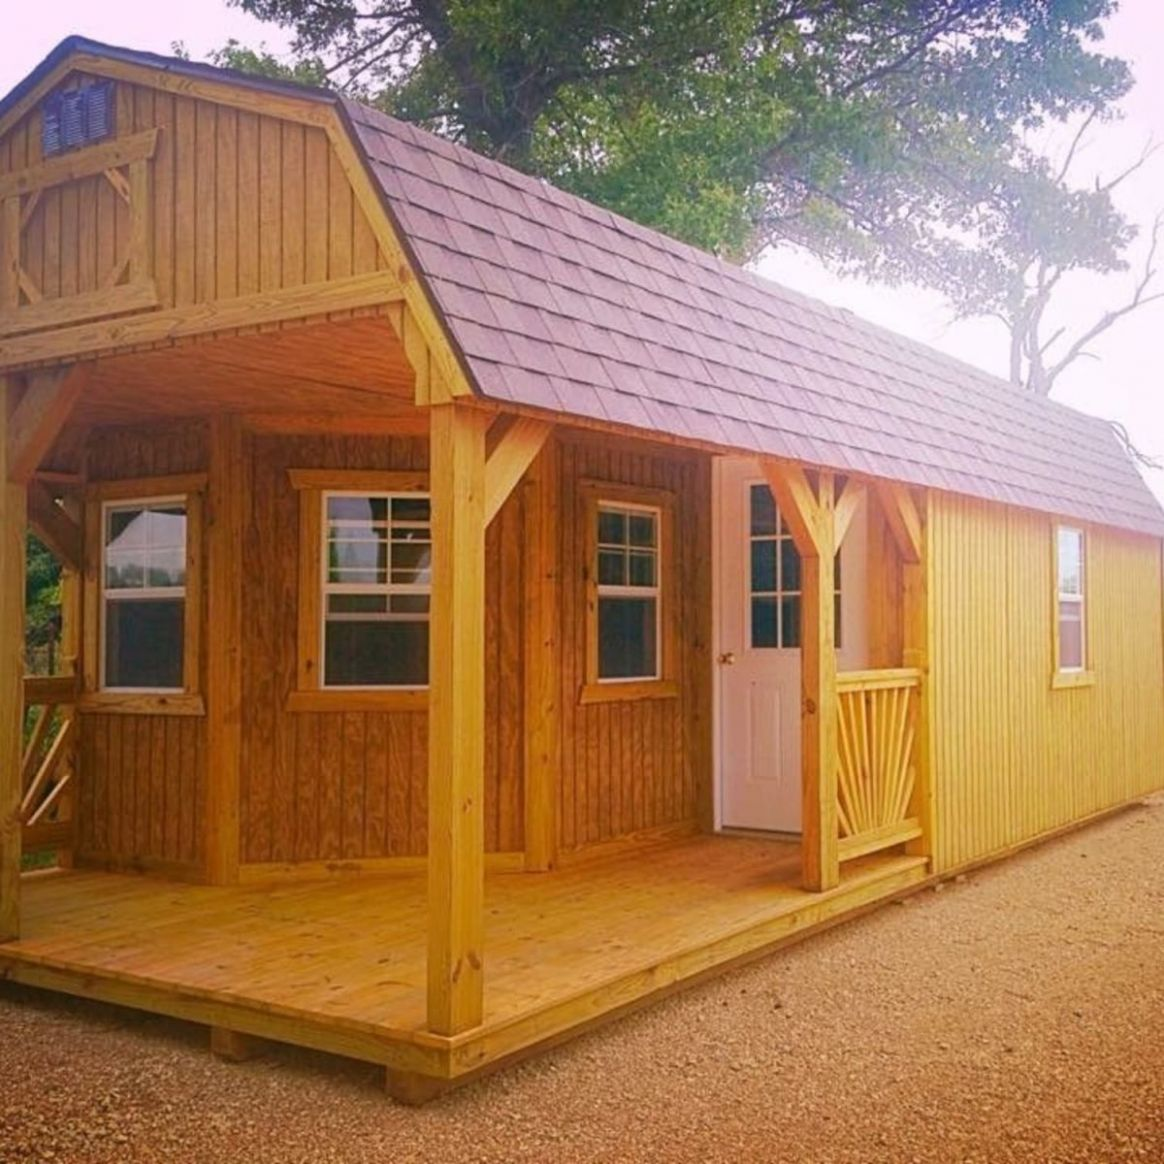 9x9 Tiny House - Tiny House for Sale in Mineral Point, Wisconsin - Tiny  House Listings - tiny house wisconsin